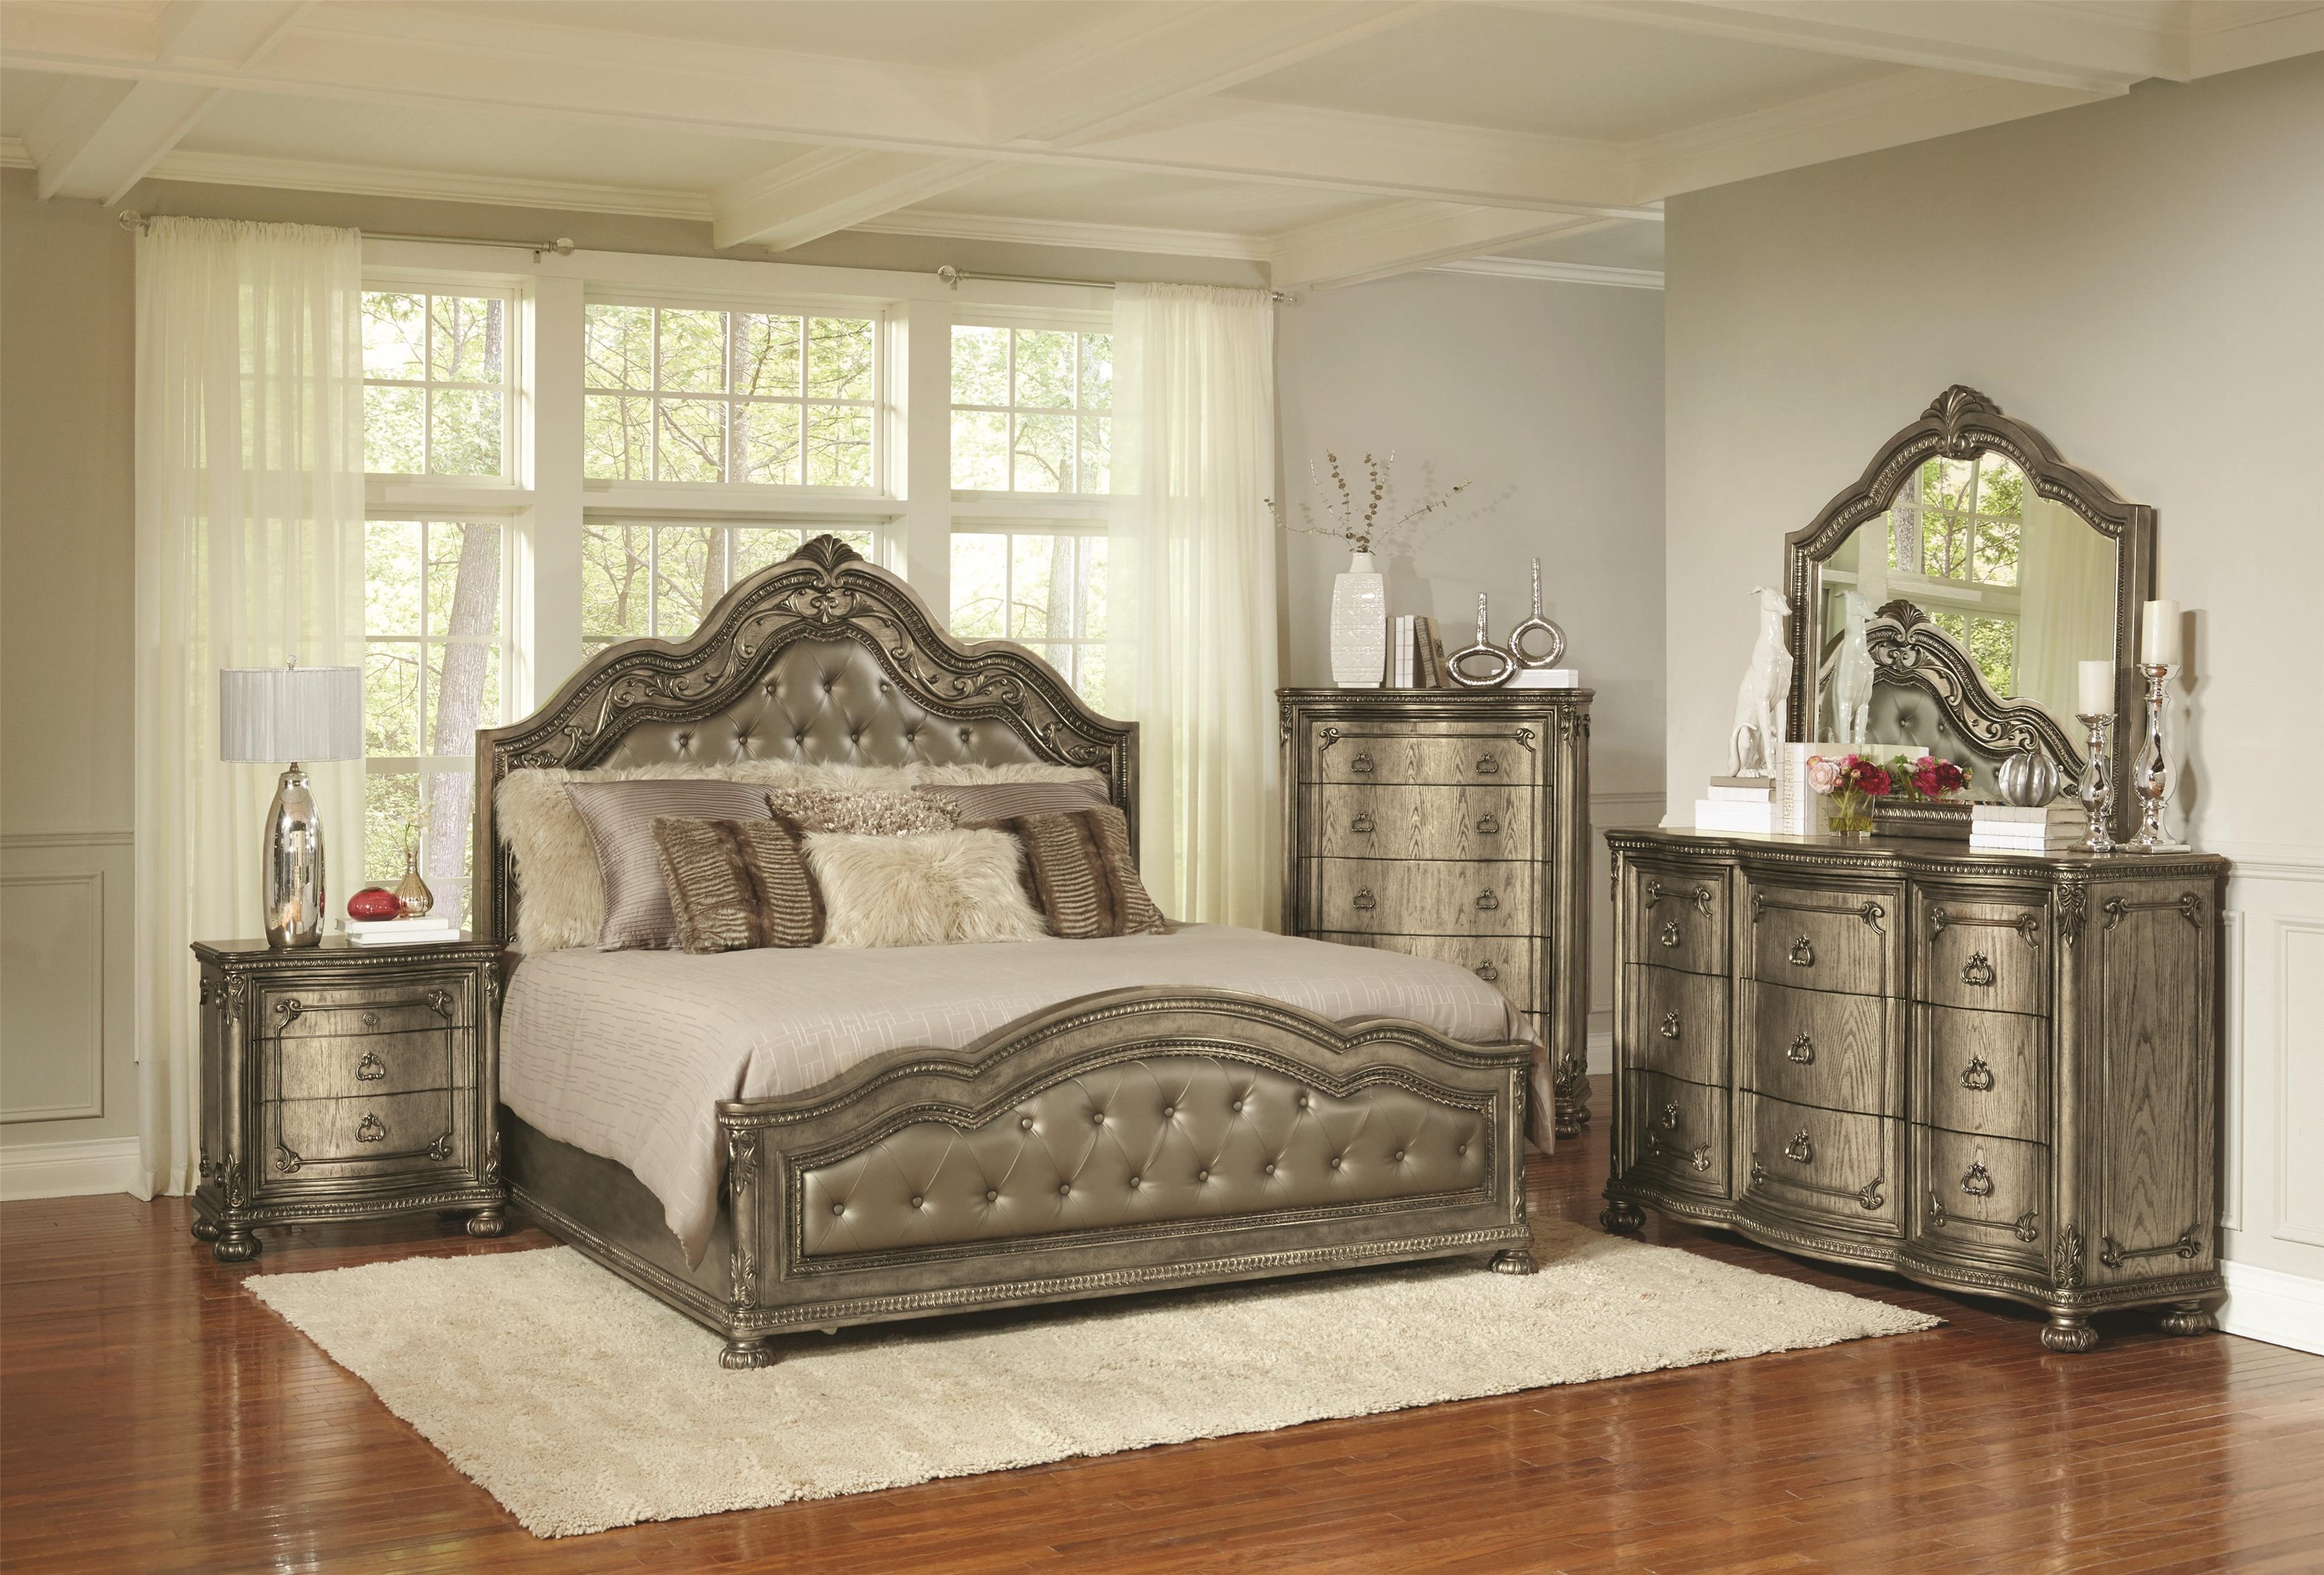 Avalon Seville Queen 5 Piece Bedroom Group Royal Furniture Bedroom Groups